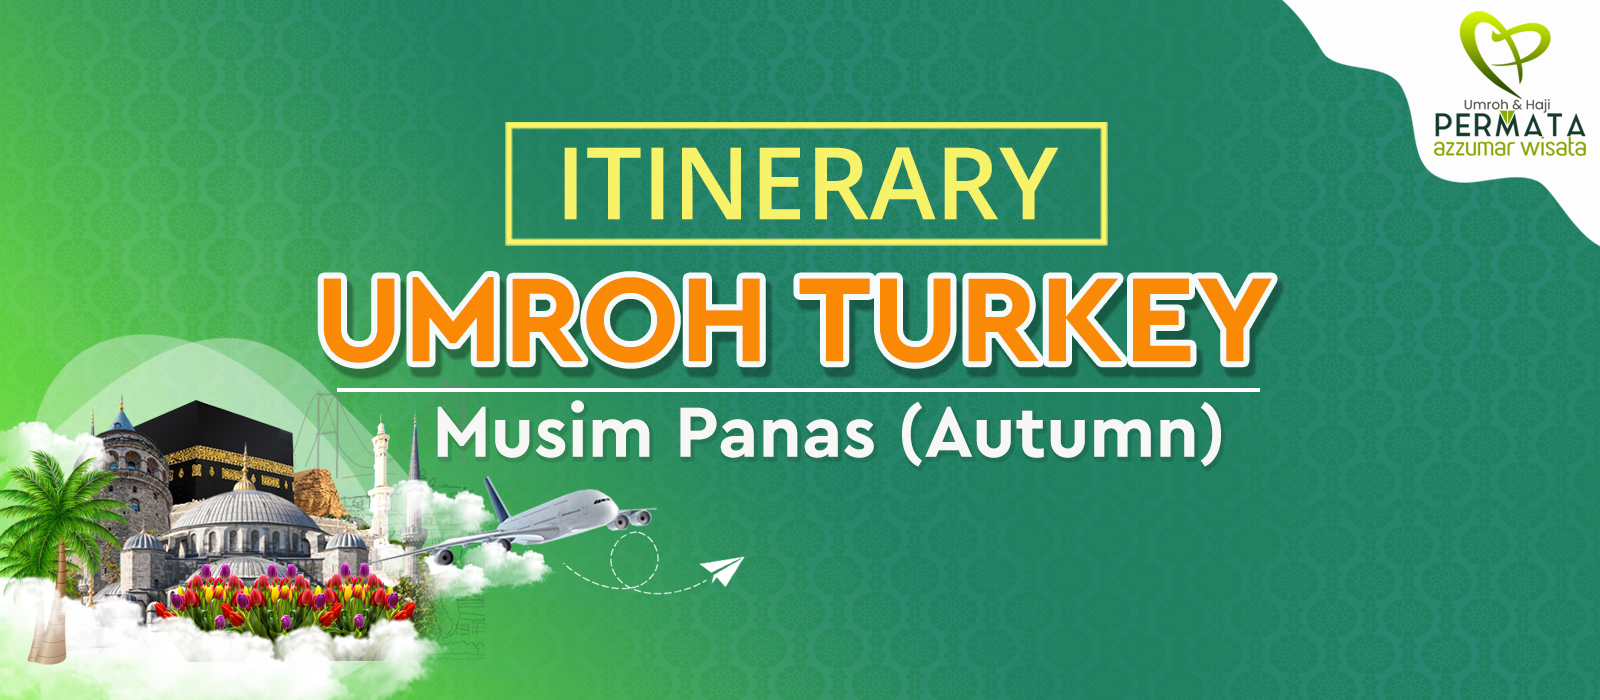 program Umroh plus turki autumn season